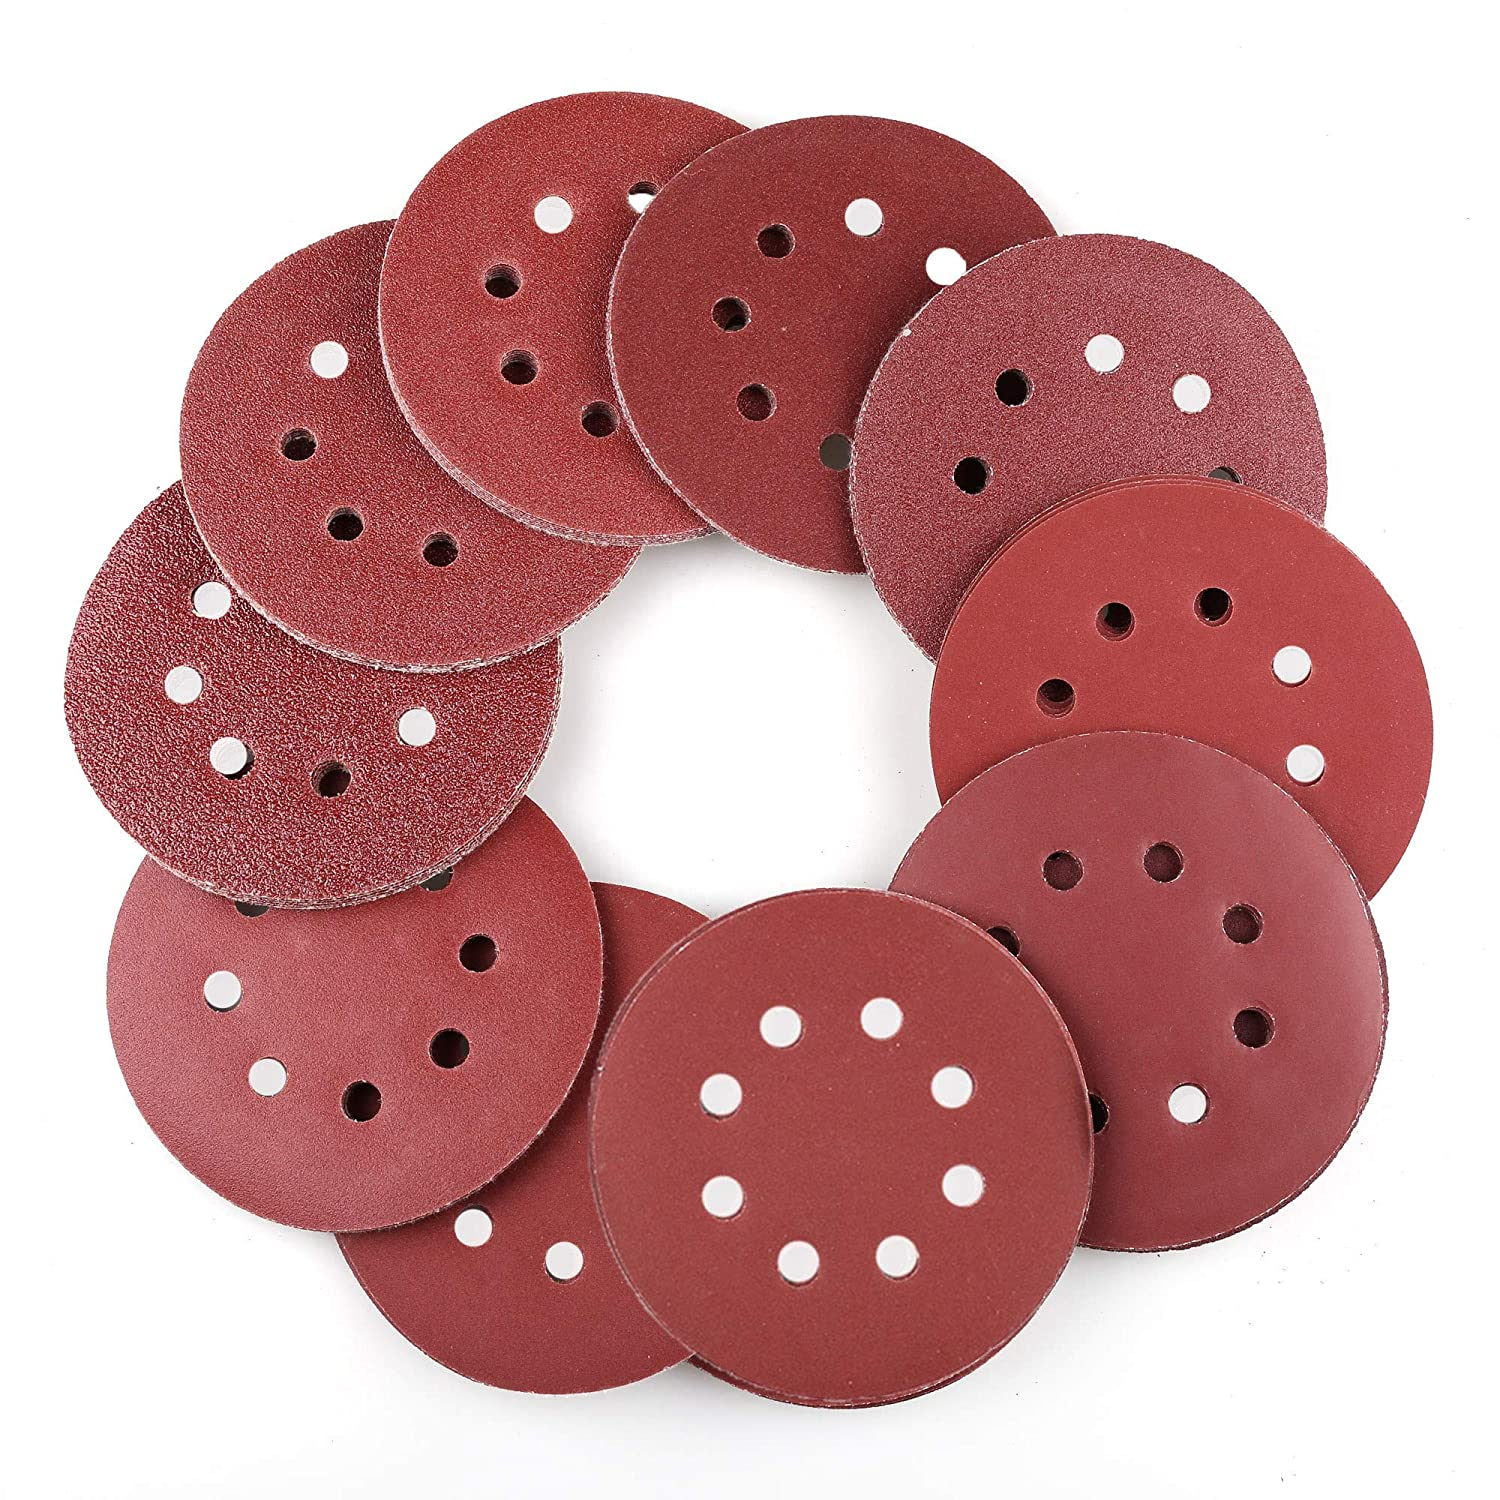 Details about  /50 Pcs 5 Inches 8 Hole Hook And Loop Sanding Discs S Round  Sandpaper 80 Grit